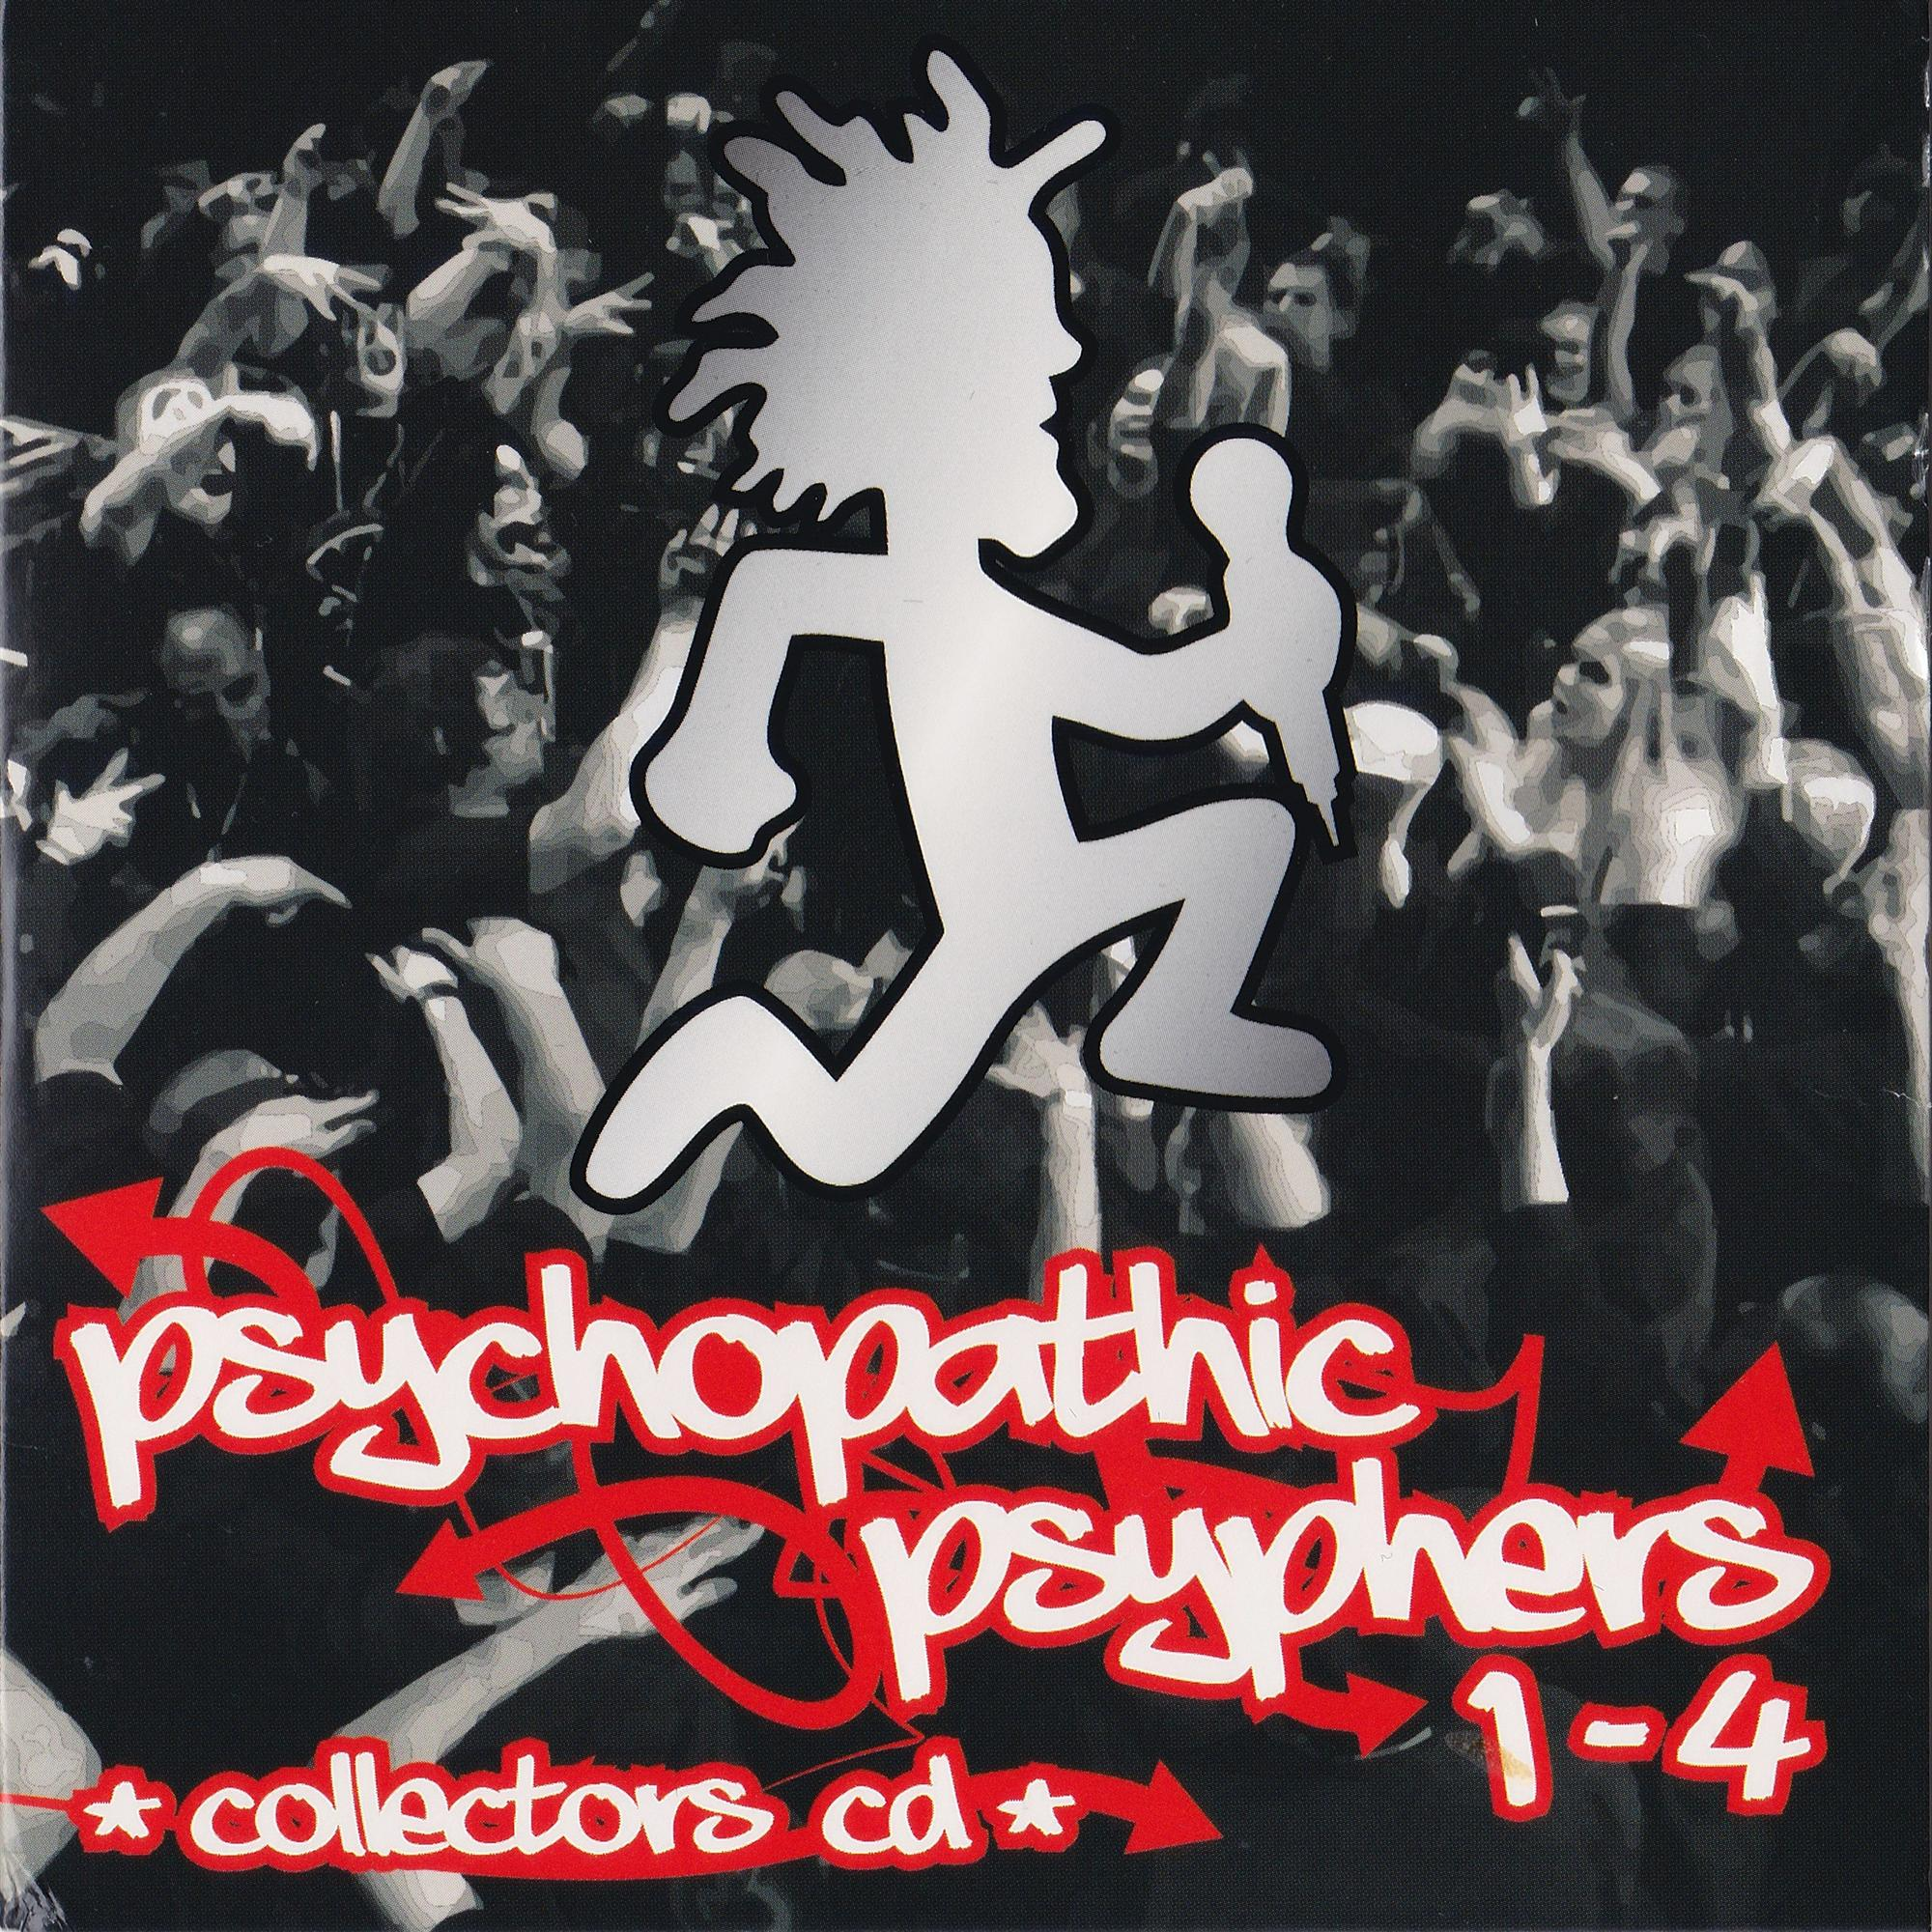 Psychopathic Records Wallpaper Psychopathic psyphers album 2000x2000